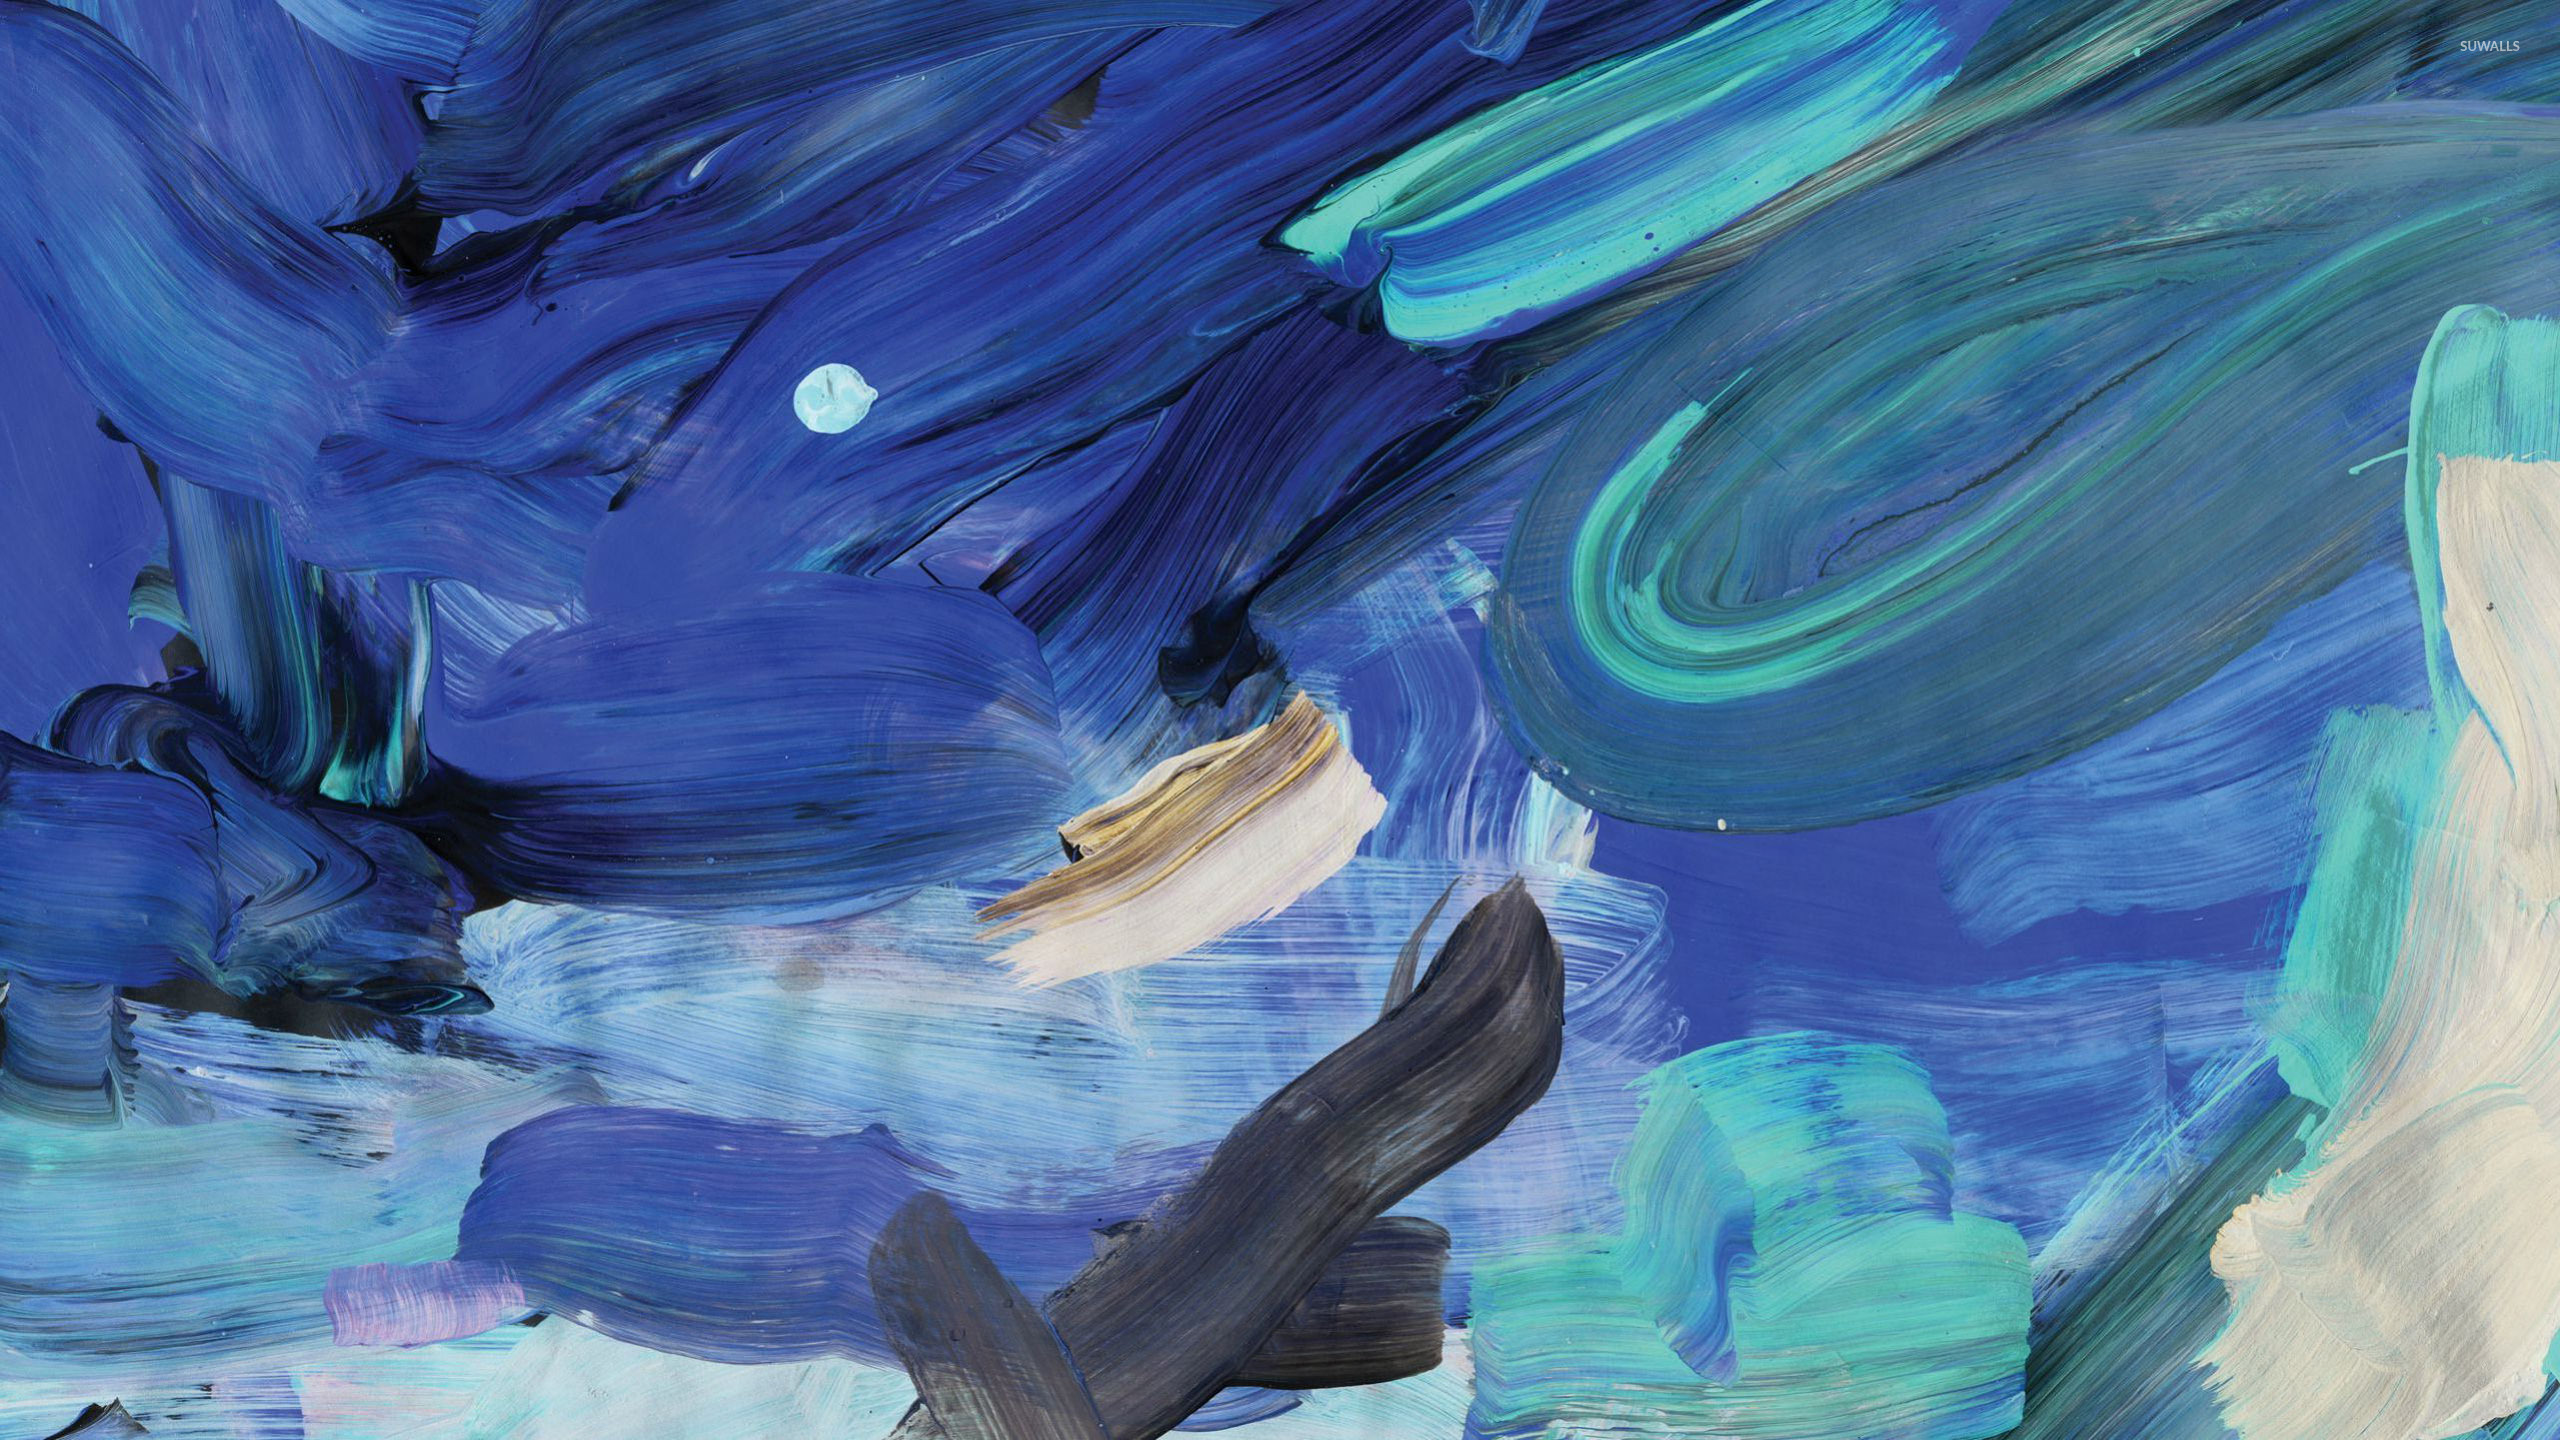 paint strokes wallpaper,blue,painting,water,art,watercolor paint